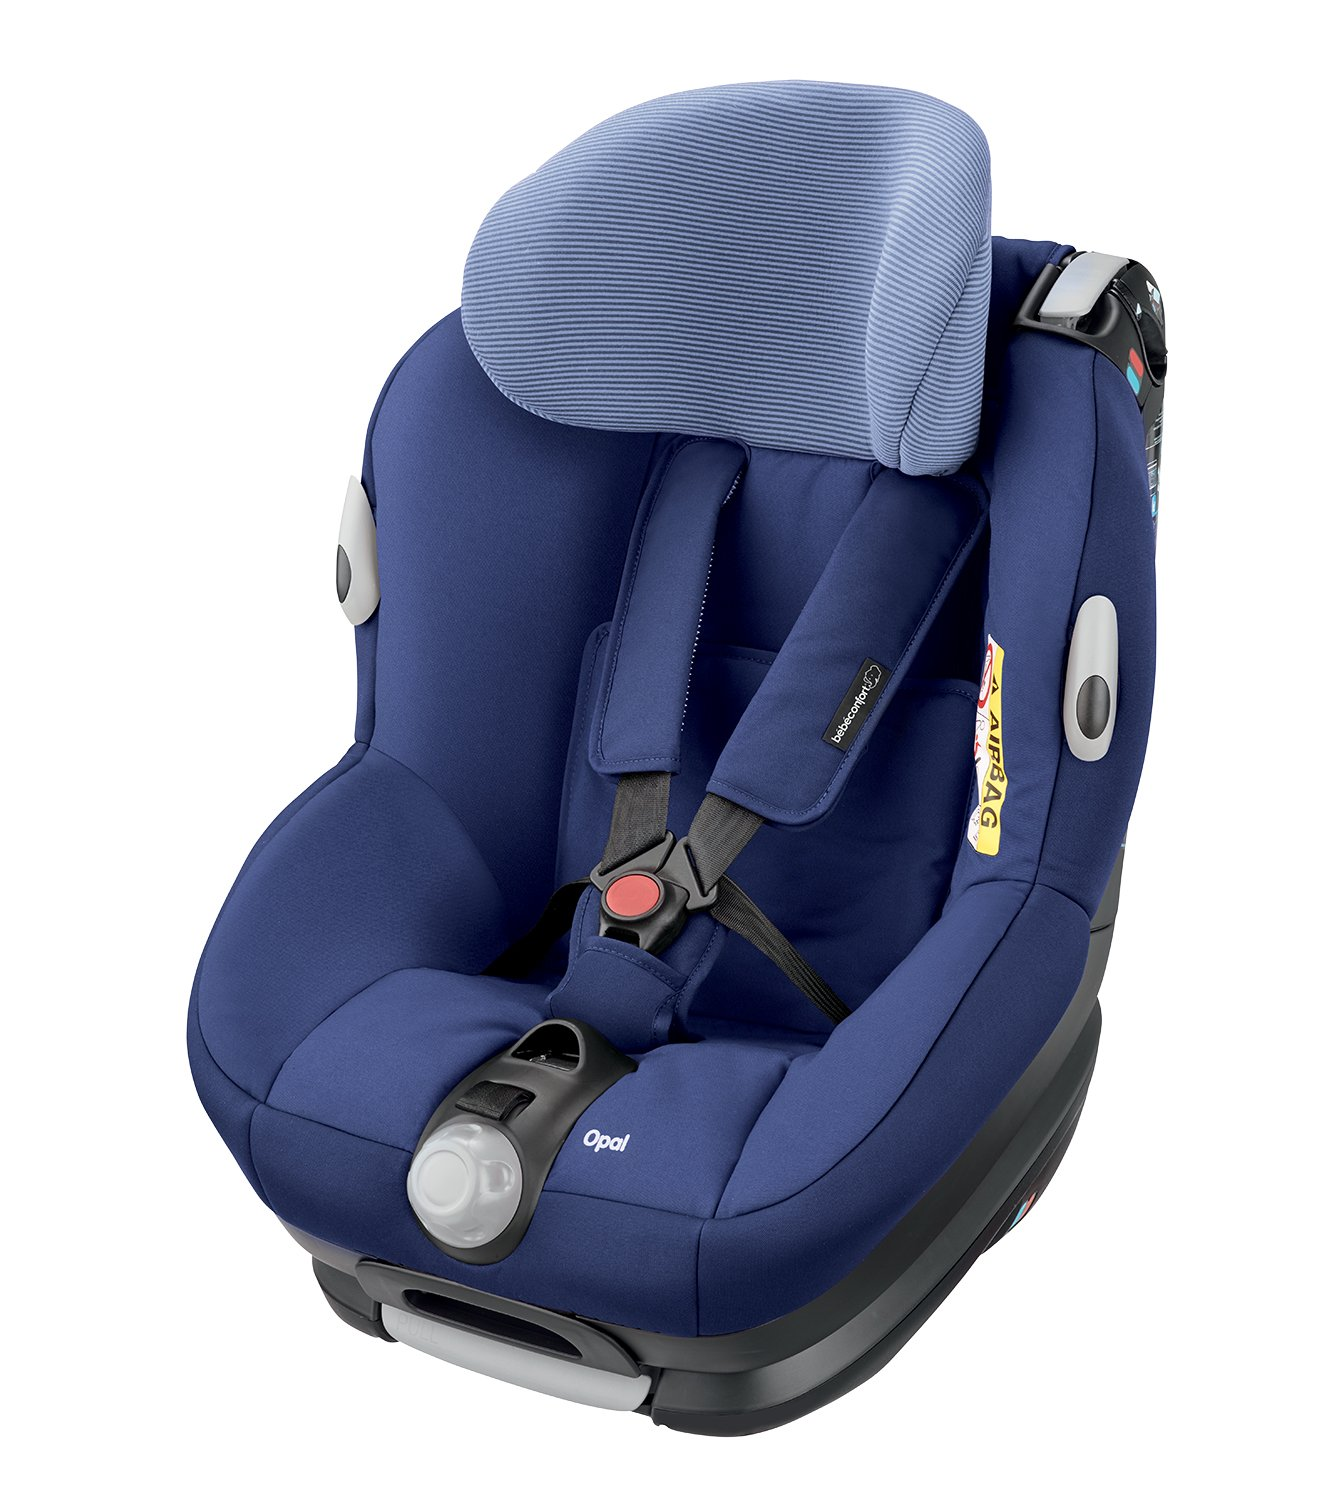 B b Confort Opal Silla de coche grupo 01 color azul Amazon